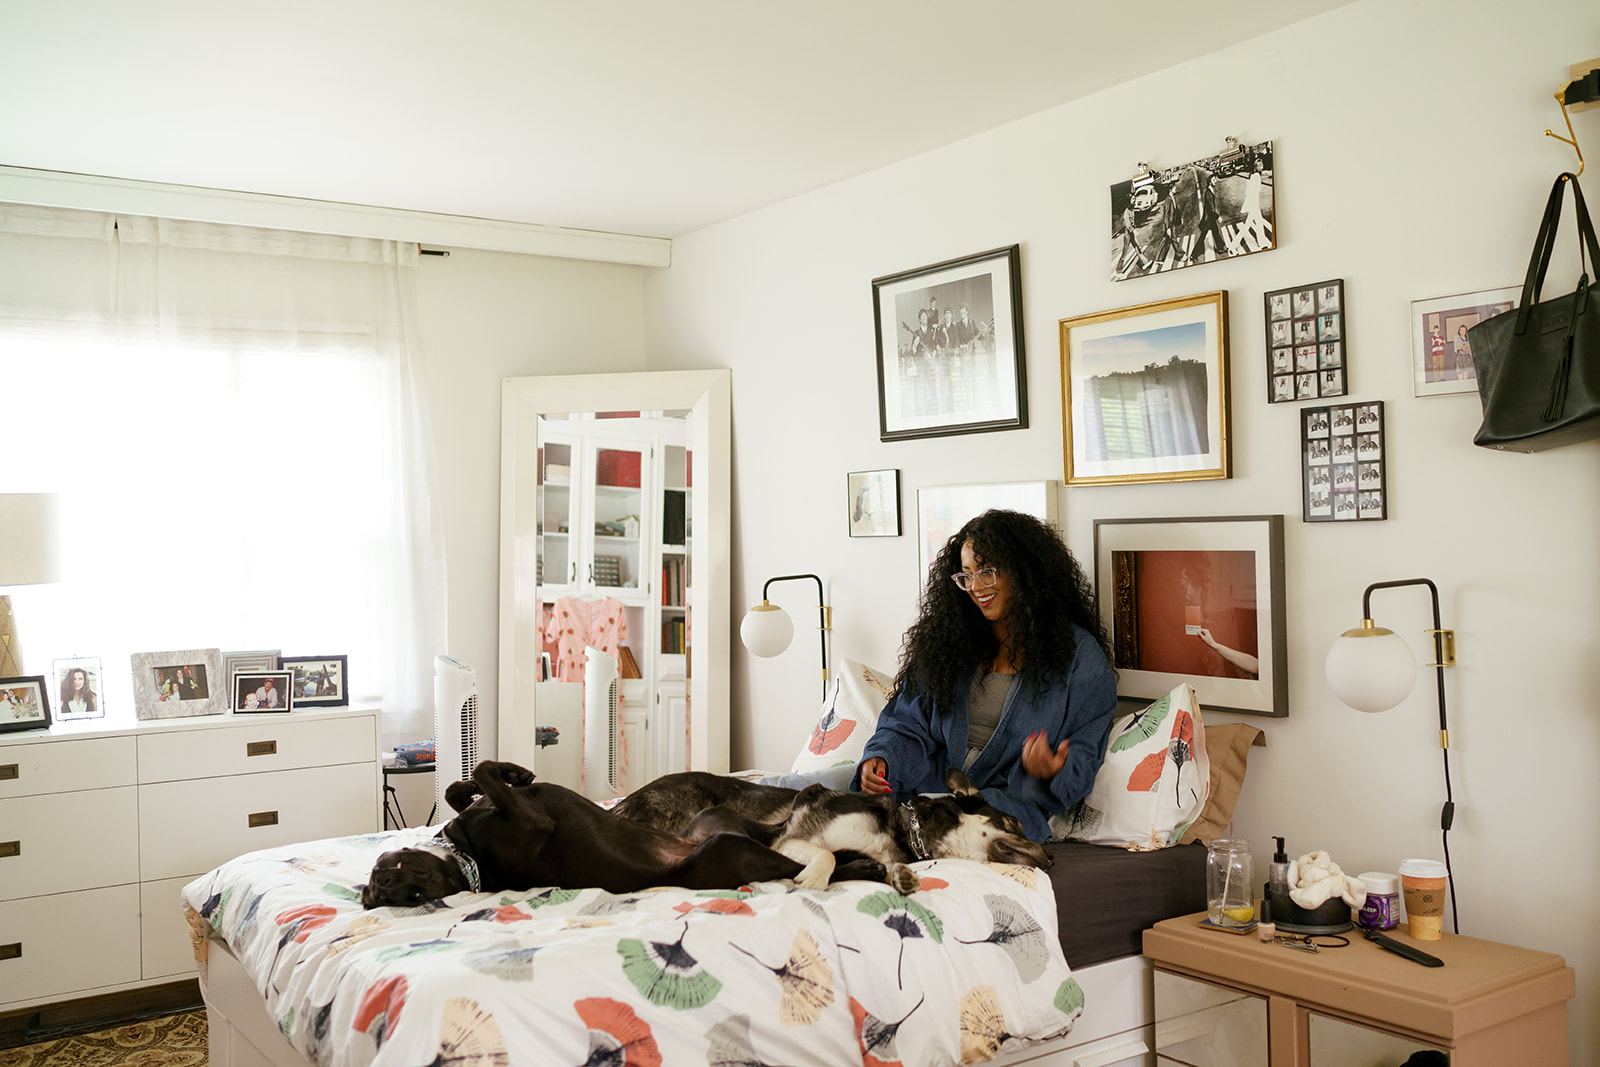 woman sitting on bed with dog